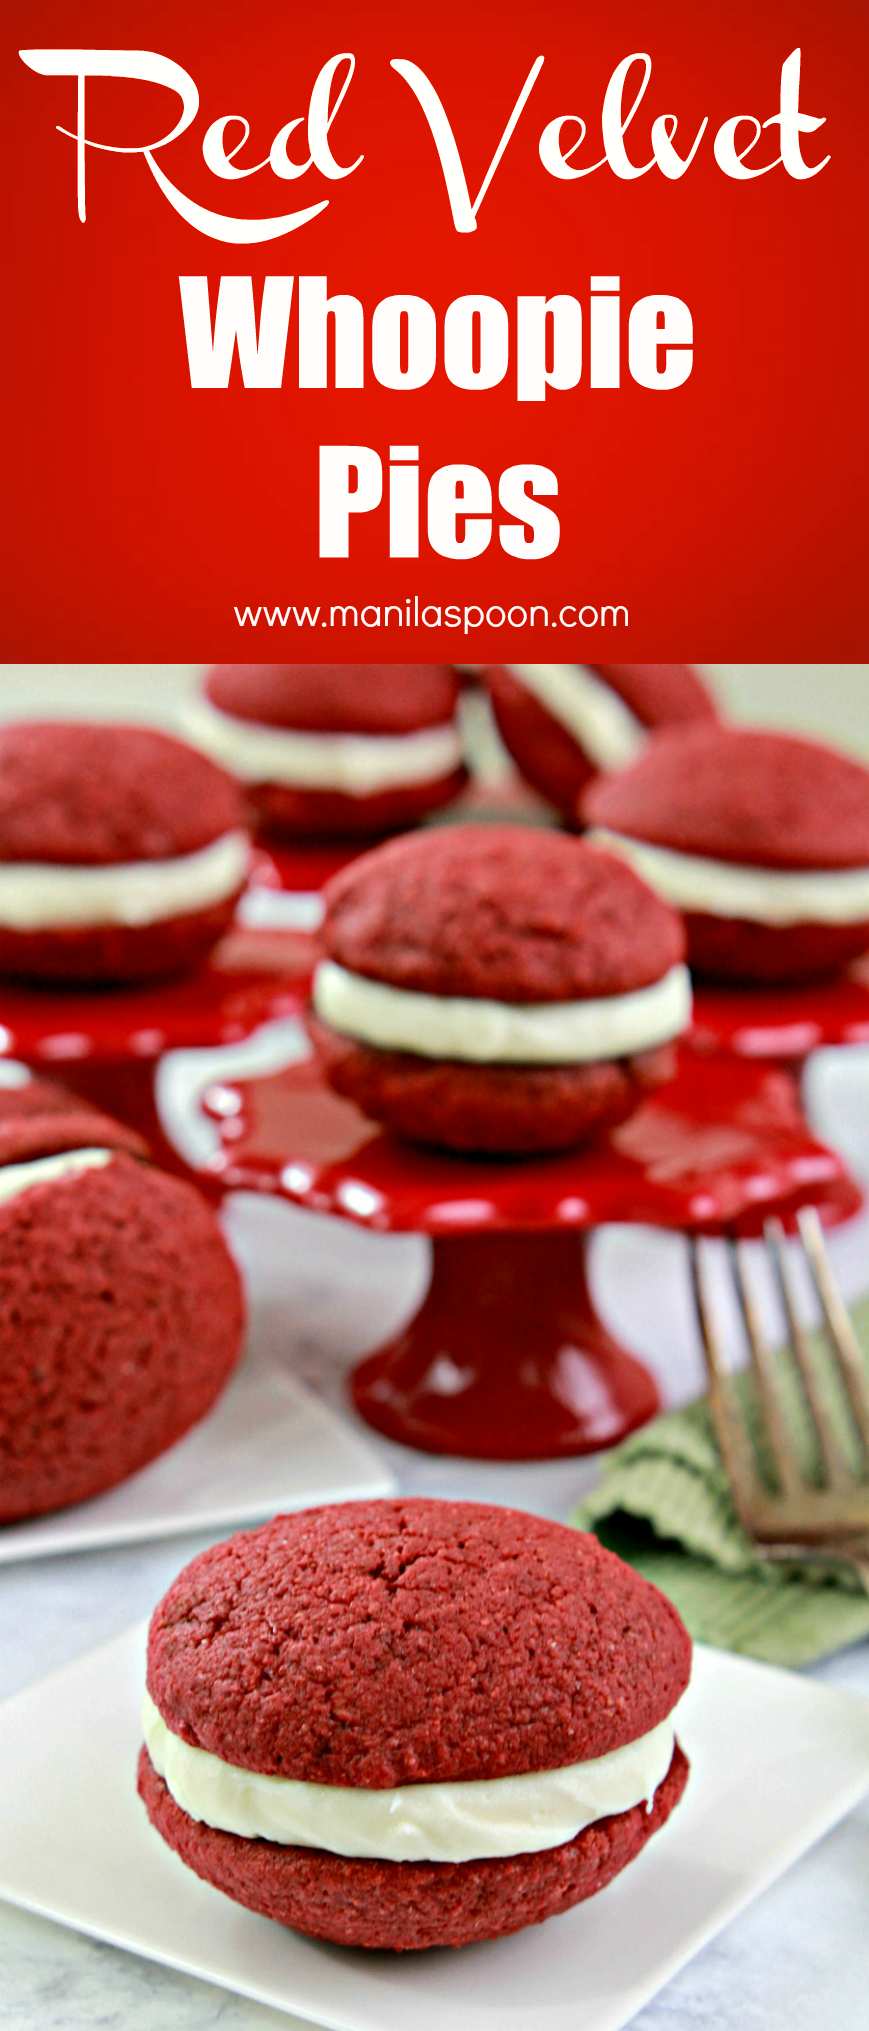 Perfectly delicious sweet treat for Valentine's Day - Red Velvet Whoopie Pies!! Easy to make and looks impressive, too!